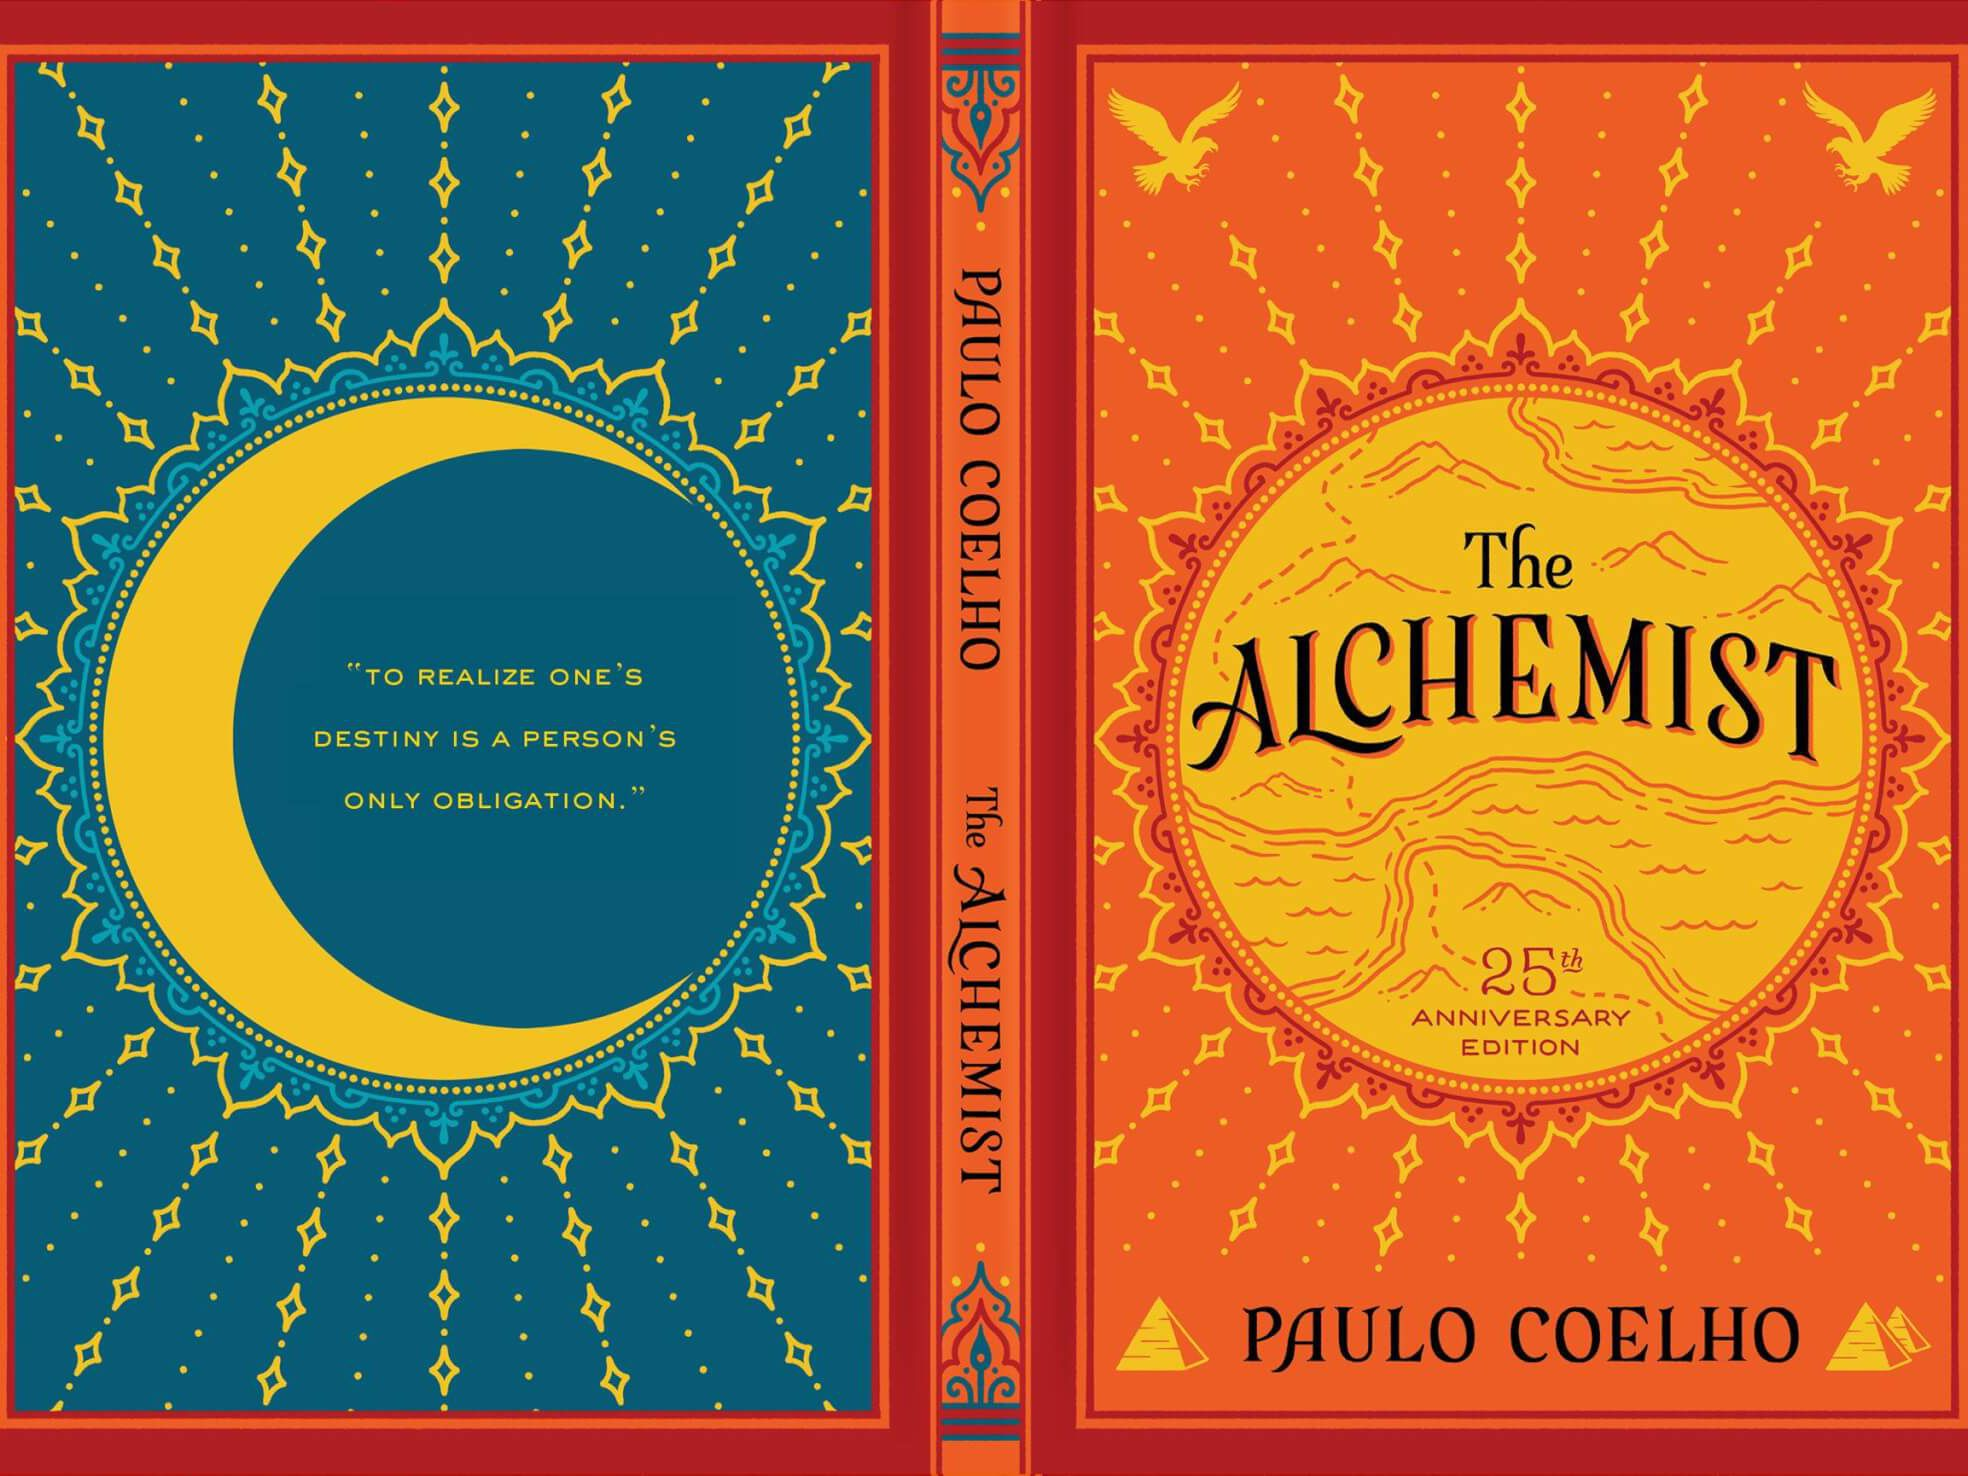 The Alchemist' Overview